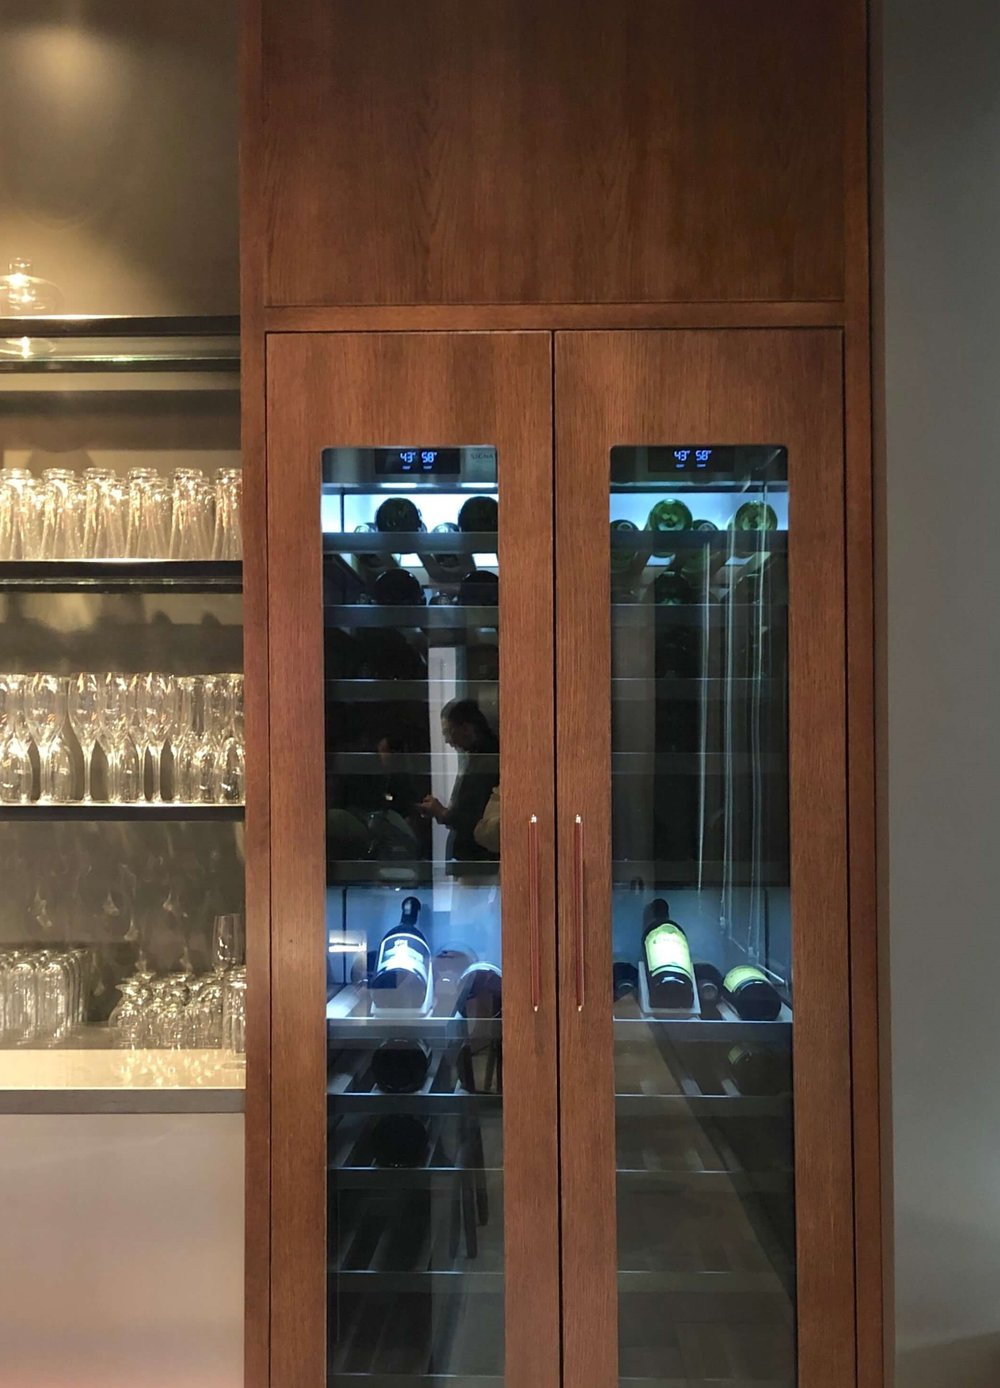 Wine refrigeration in the lounge at the SKS Appliances Experience and Design Center, Napa